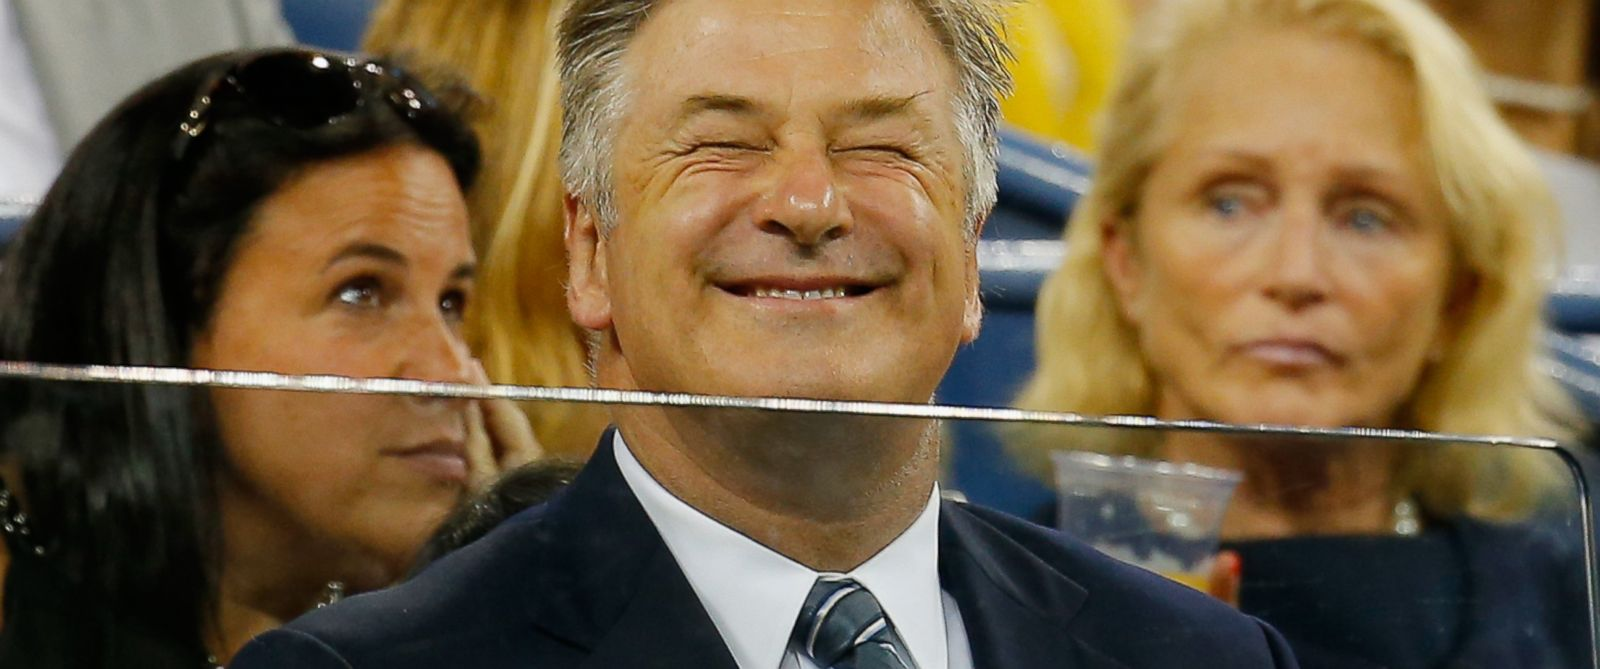 PHOTO: Alec Baldwin attends Day One of the 2014 US Open at the USTA Billie Jean King National Tennis Center in New York, Aug. 25, 2014.